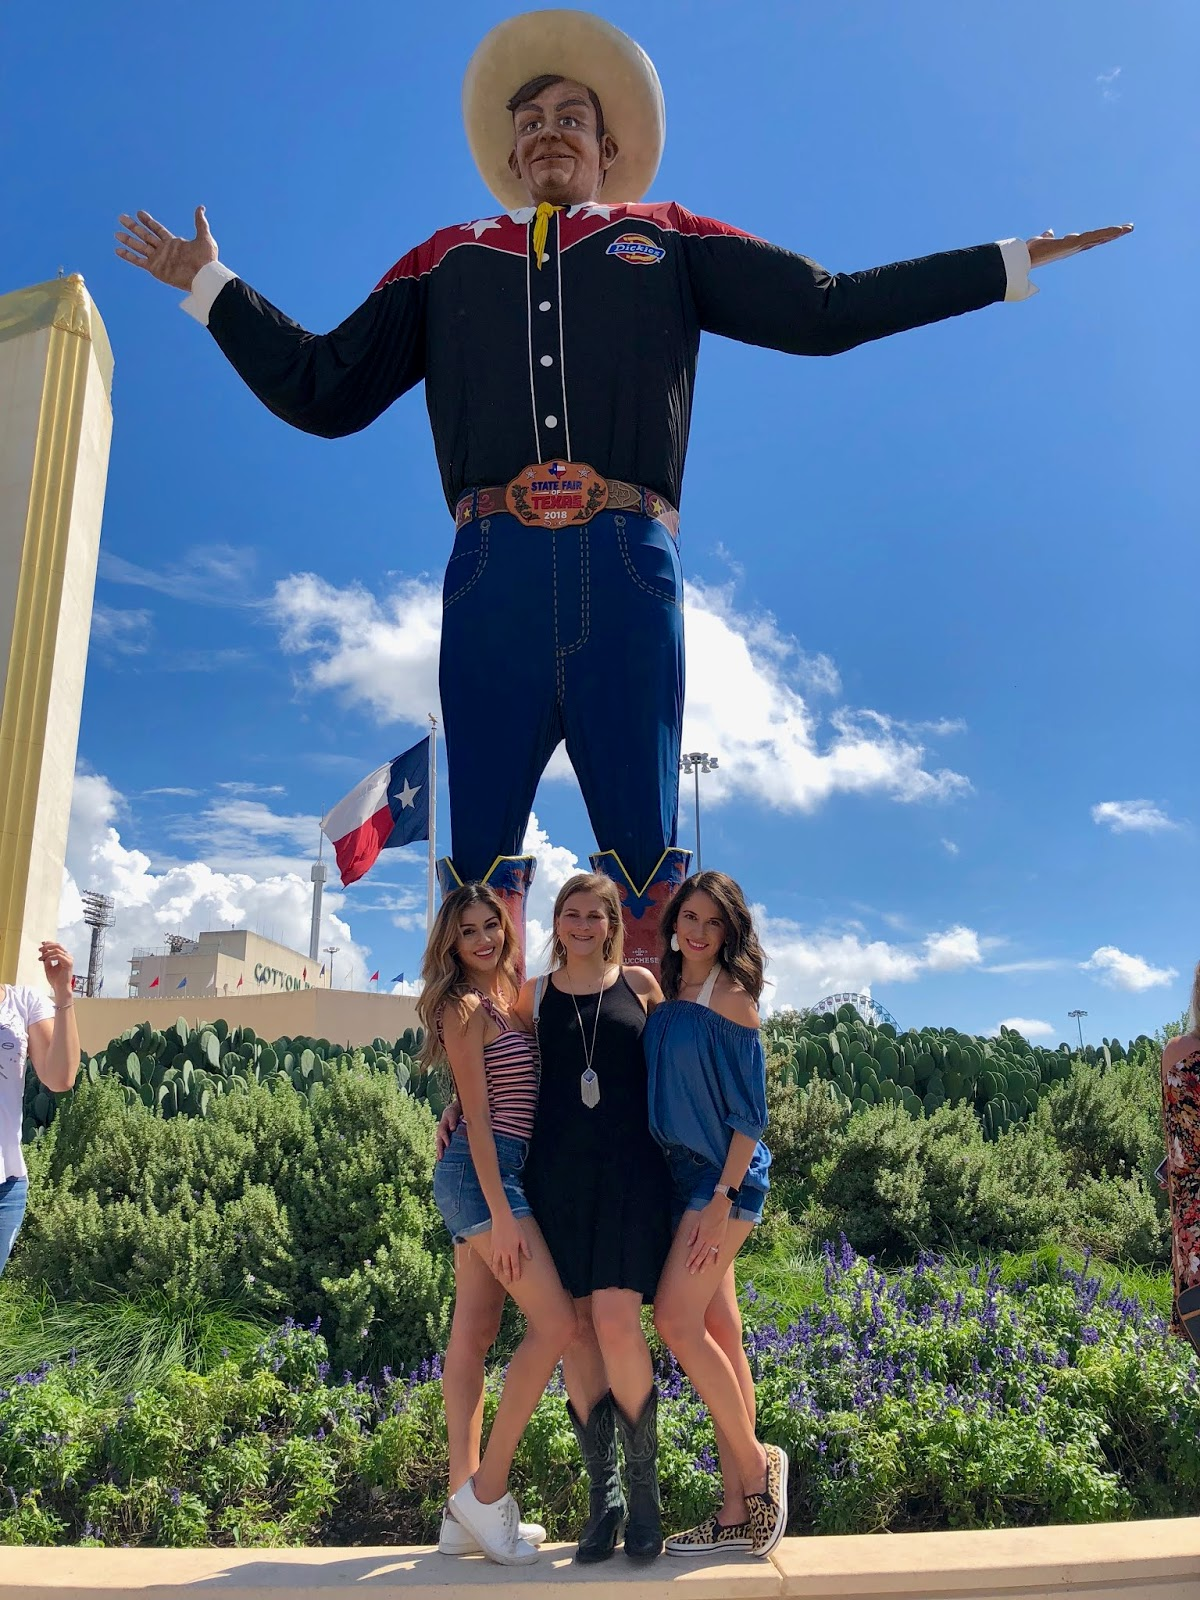 State Fair of Texas 2018